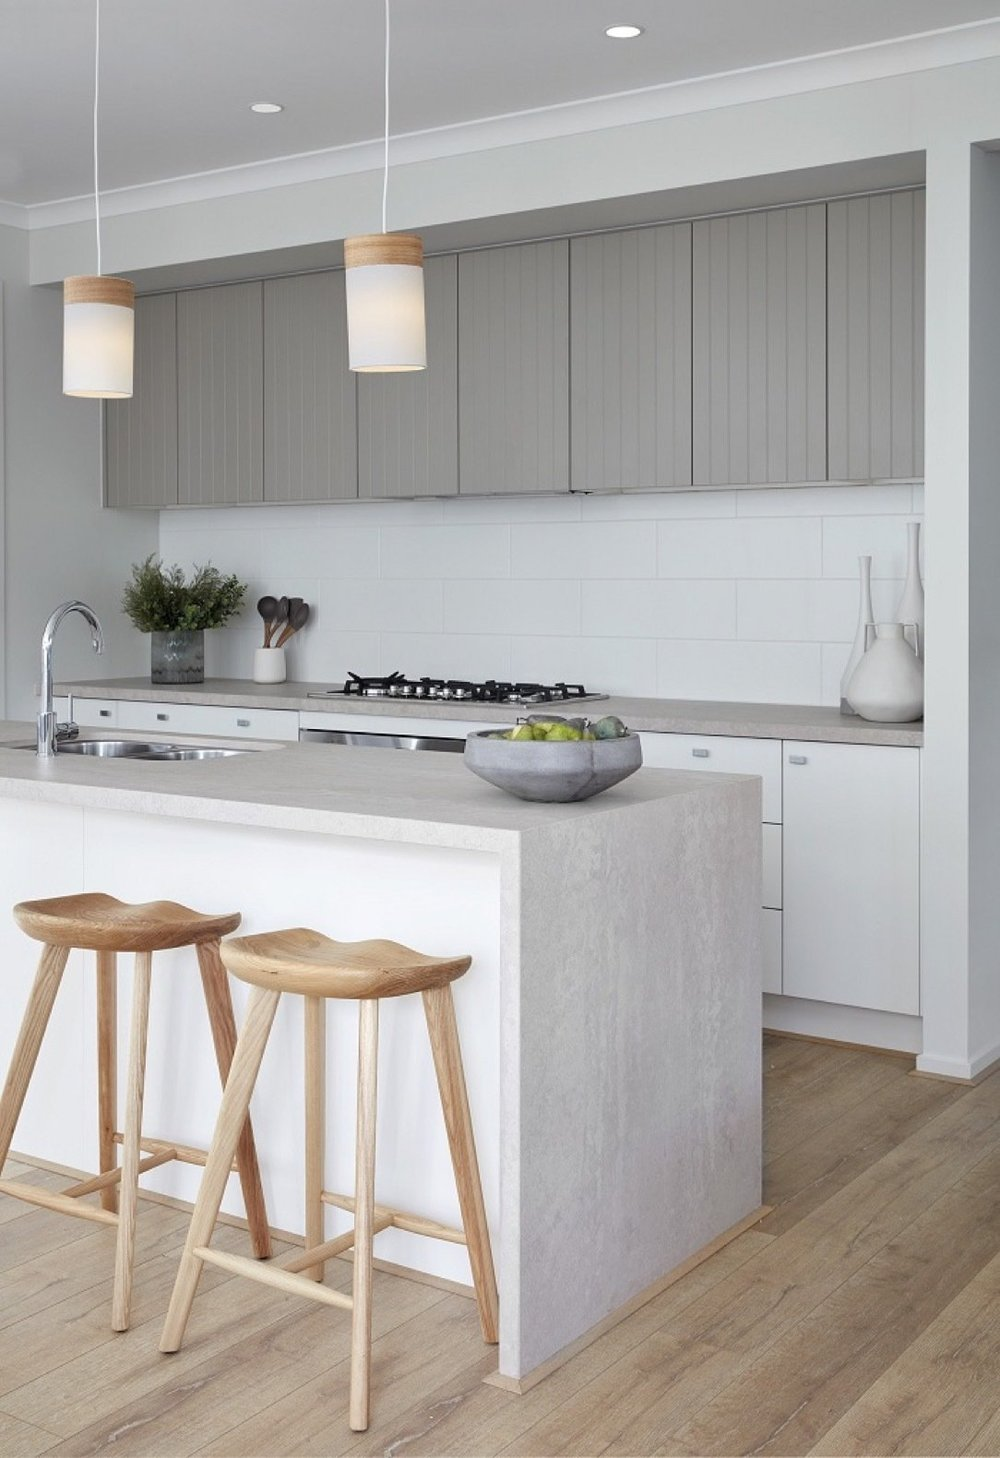 Caesarstone's seamless qualities makes the material a leading choice for dramatic waterfall kitchen countertops. Pictured here is 'Topus Concrete'.  Boutique Homes Victoria / Riva 26 Display Home